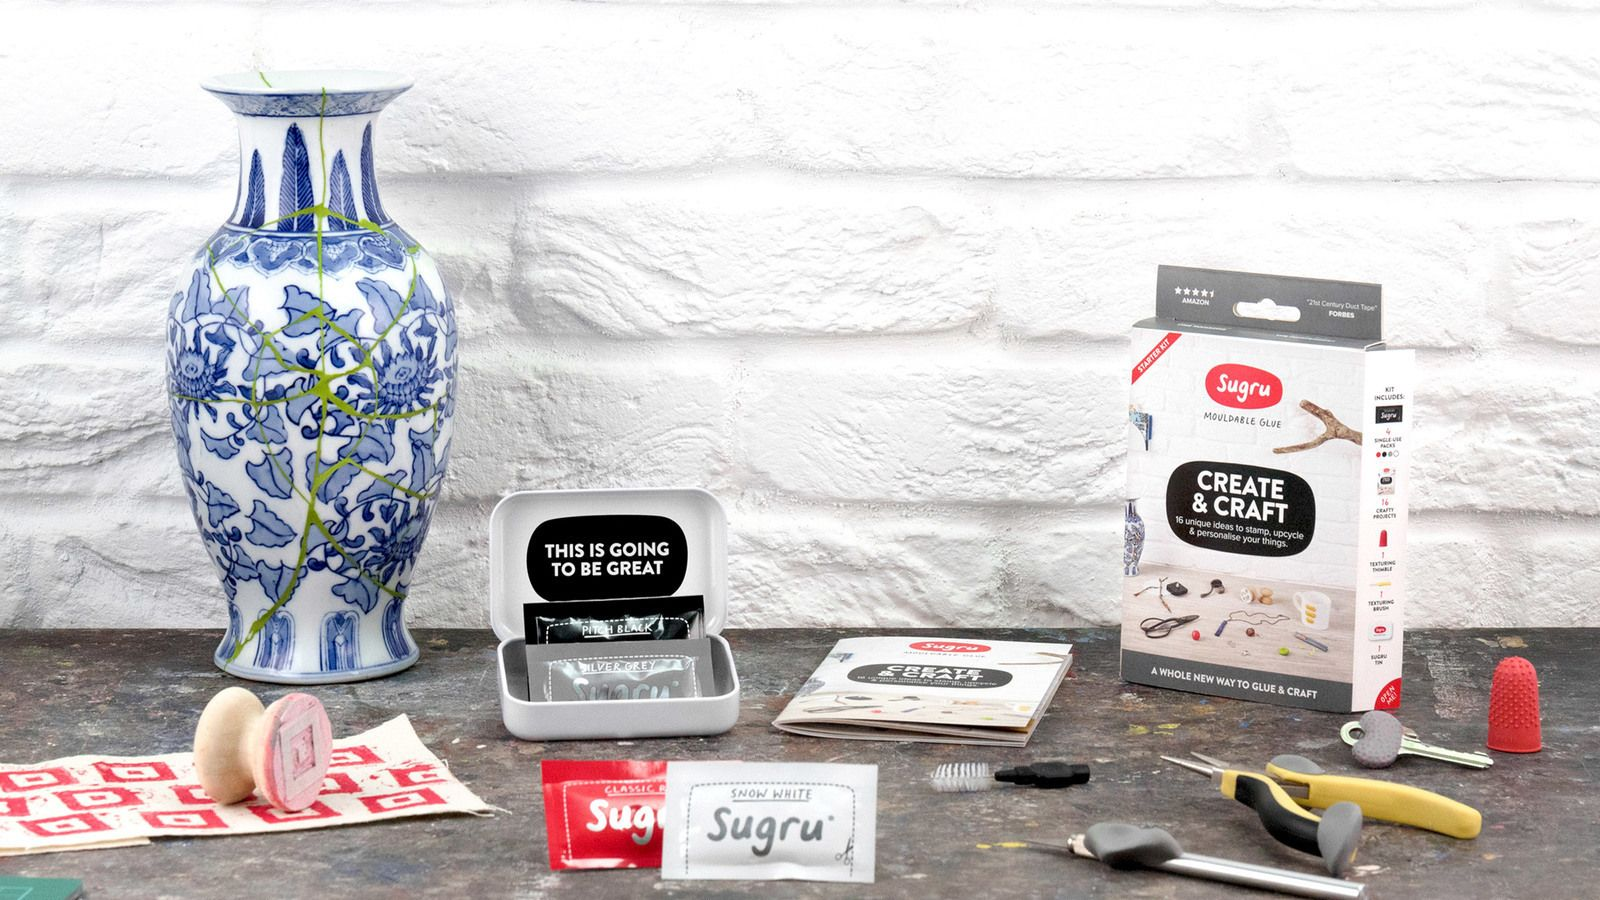 How to Create a Craft Kit as a Gift